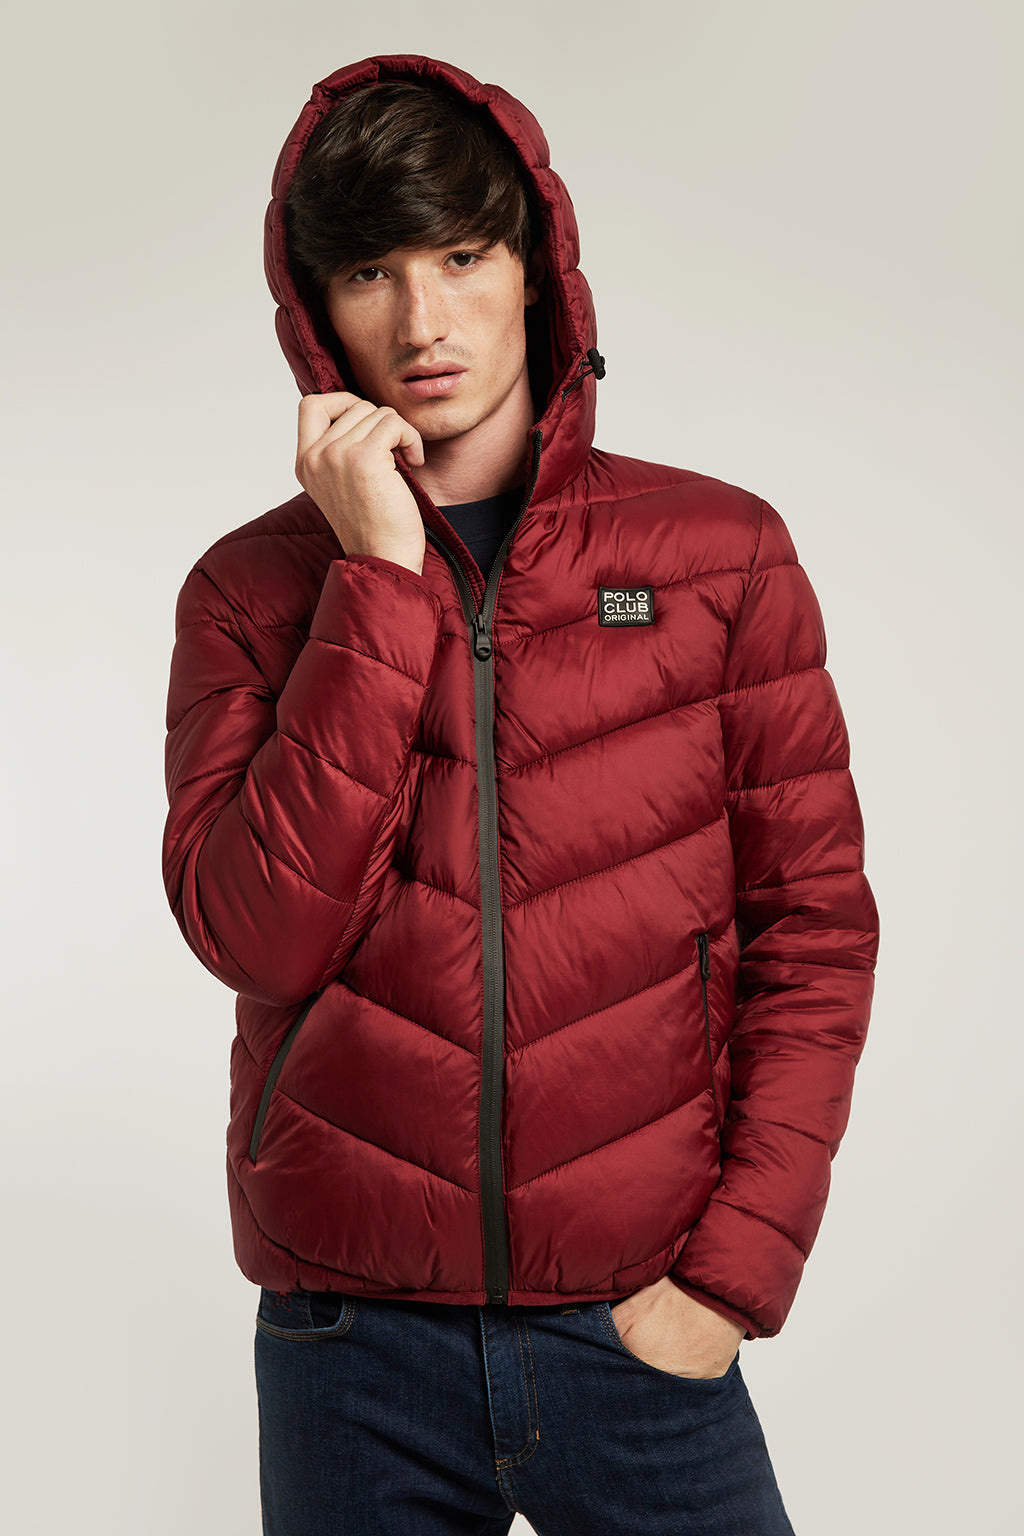 Burgundy quilted jacket with heat-sealed zip